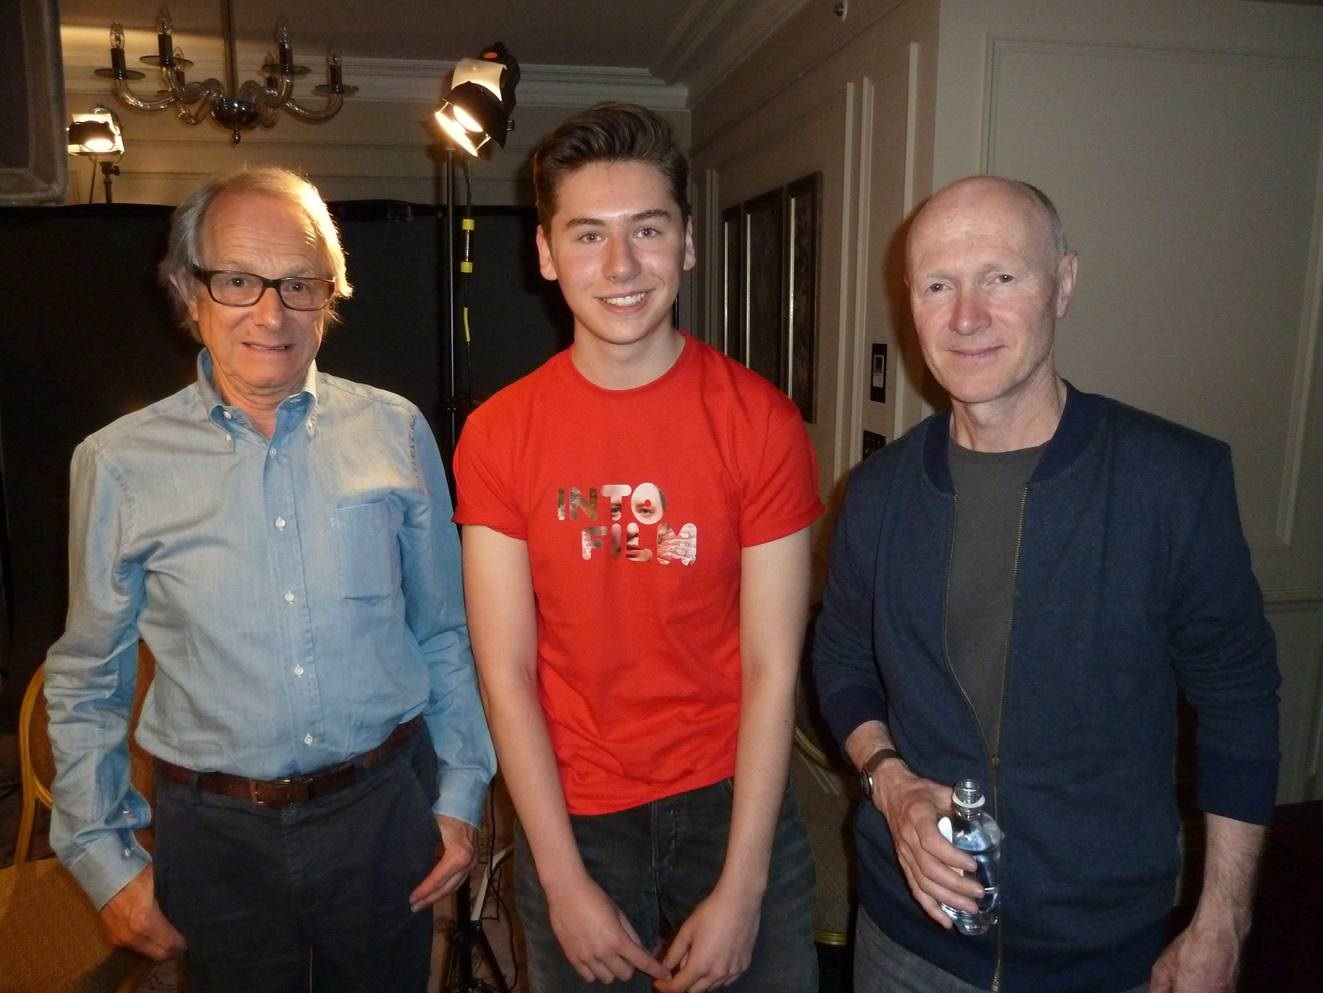 Ken Loach with Harry Goodwin and screenwriter Paul Laverty